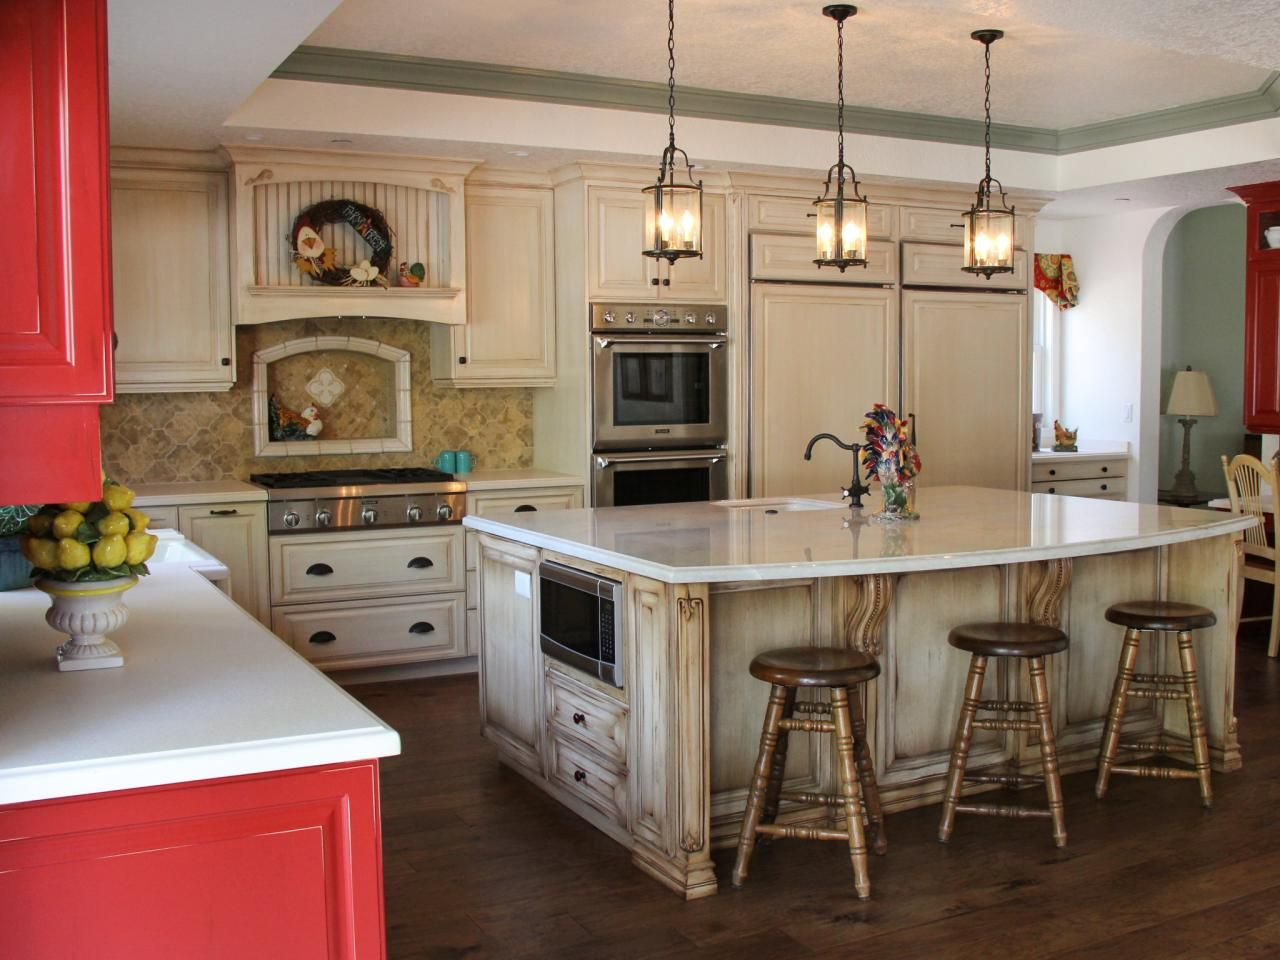 Country Kitchen Remodels Plans this country kitchen has an open-plan design that welcomes guest